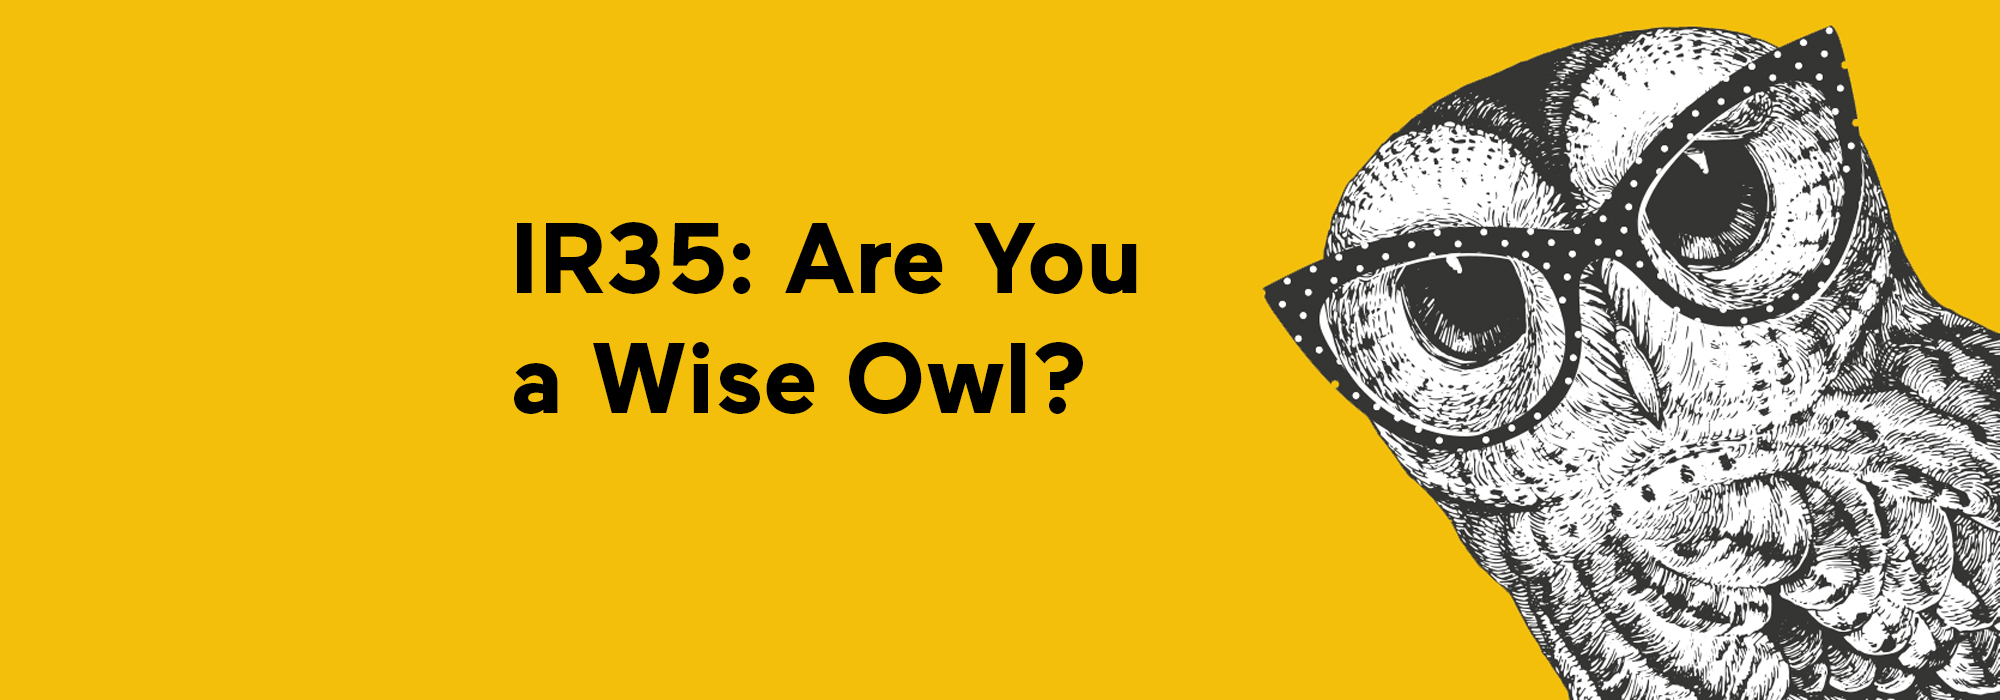 Thorn Baker Construction_IR25_Are you a Wise Owl